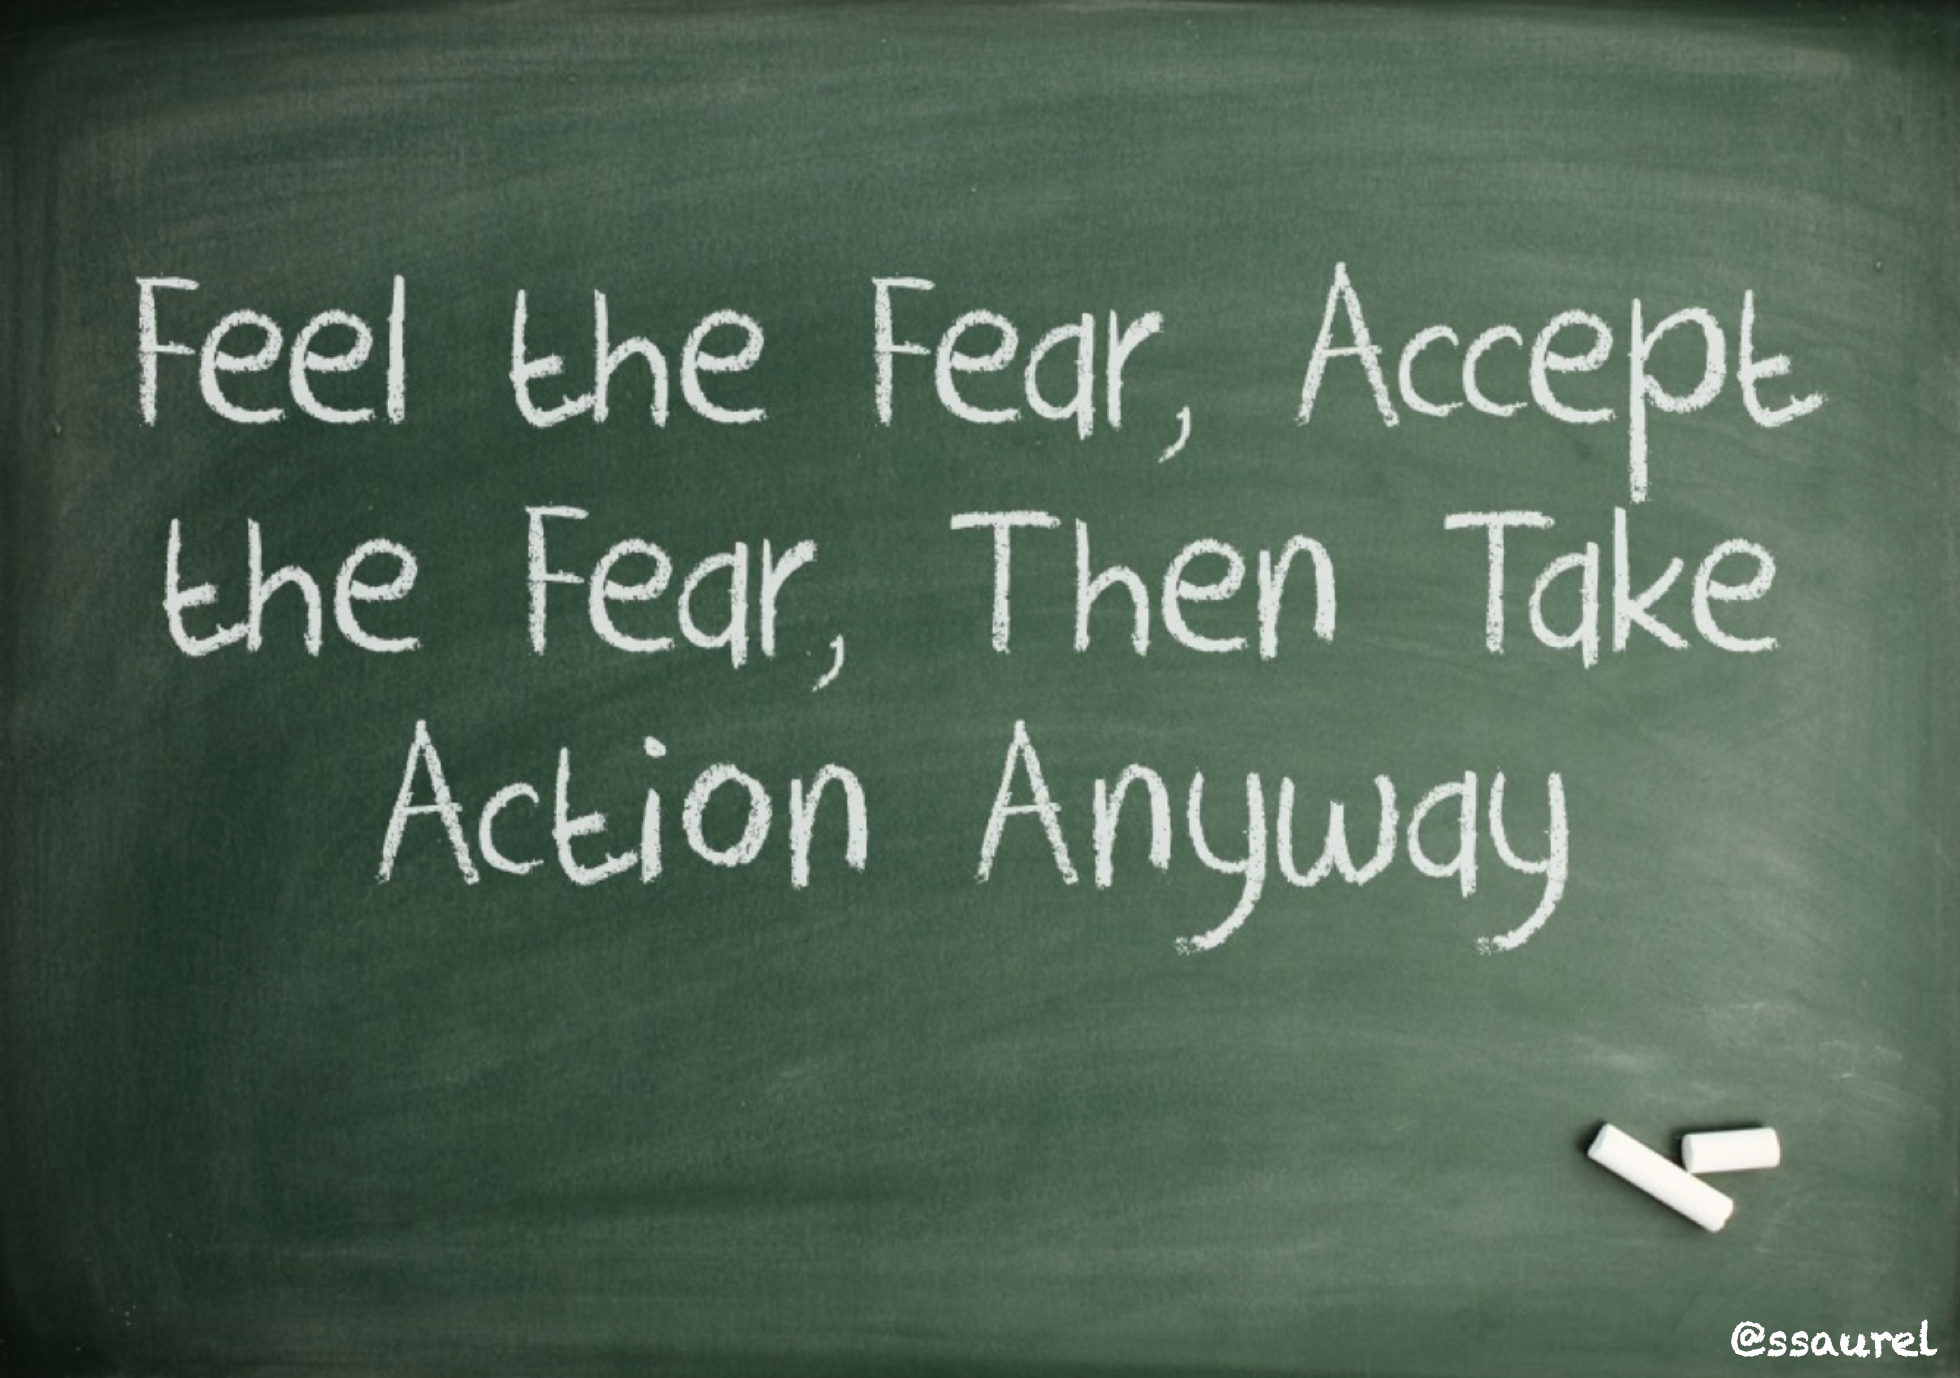 [Image] Feel the Fear, Accept the Fear, Then Take Action Anyway